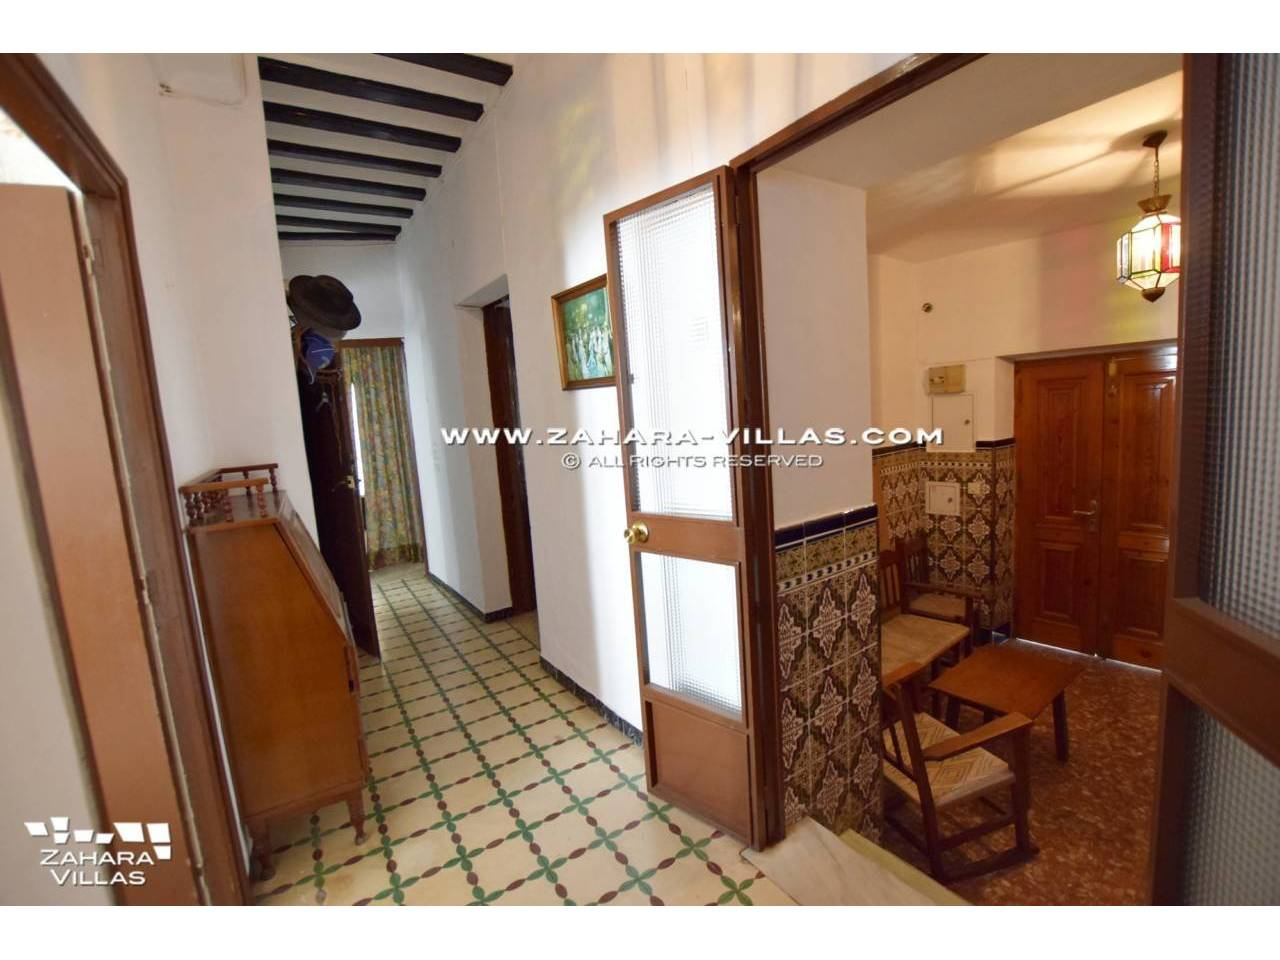 Imagen 12 de House for sale located in pedestrian street of Vejer de la Frontera